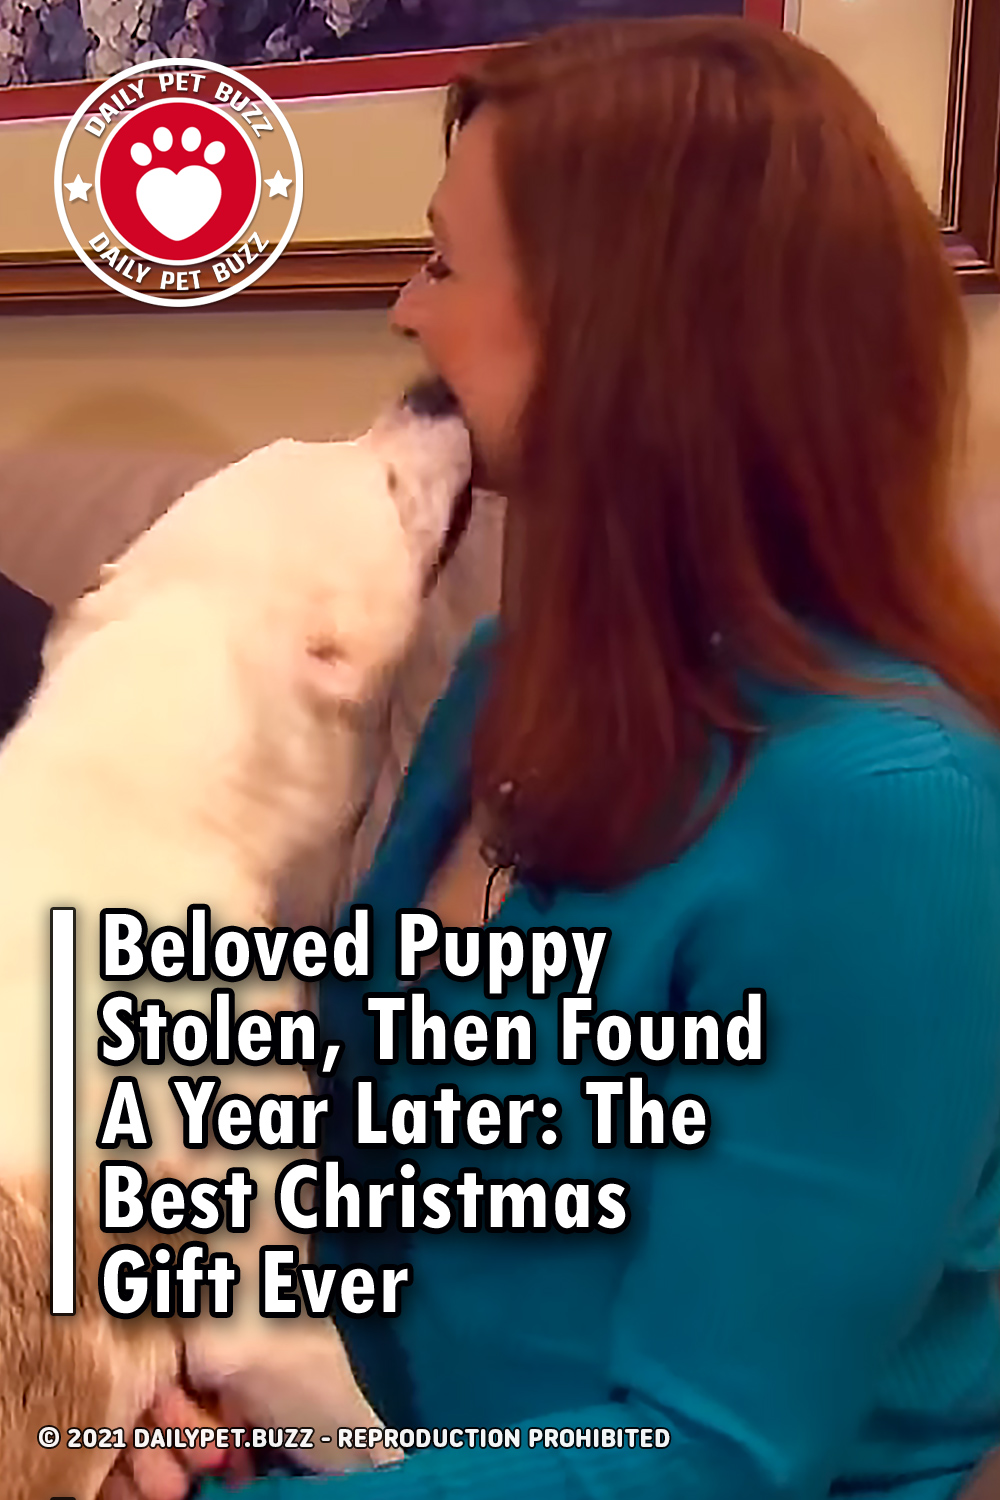 Beloved Puppy Stolen, Then Found A Year Later: The Best Christmas Gift Ever